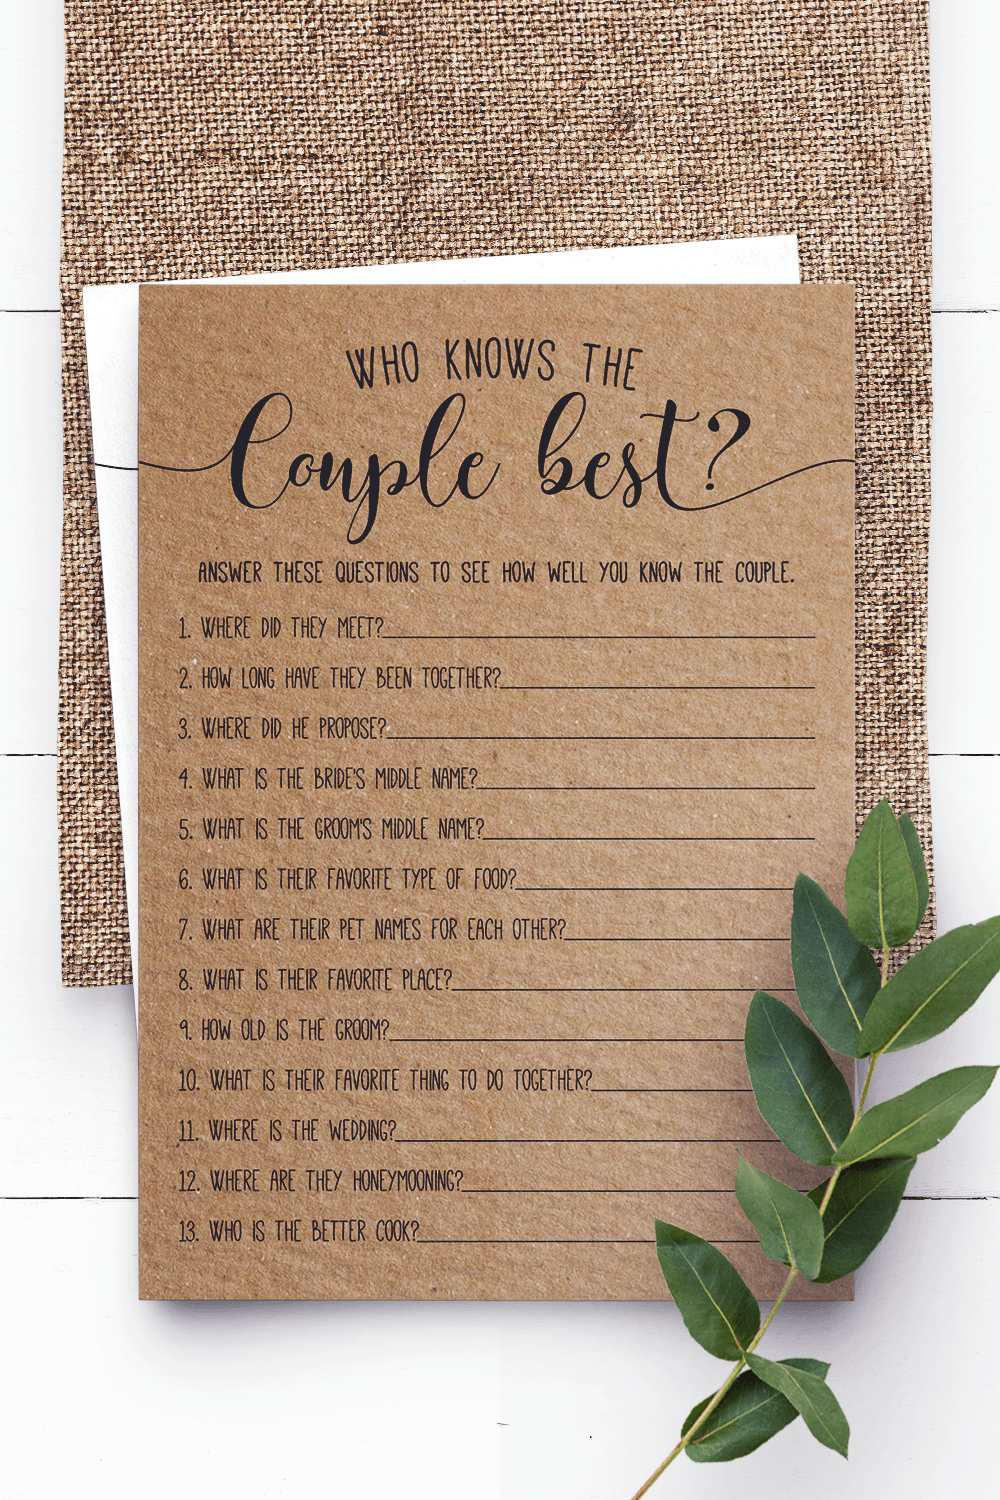 Who Knows The Couple Best ? Bridal Shower Games. Bridal Shower Game. Rustic Bridal Shower Games. Newlyweds Game.,Virtual Bridal Shower